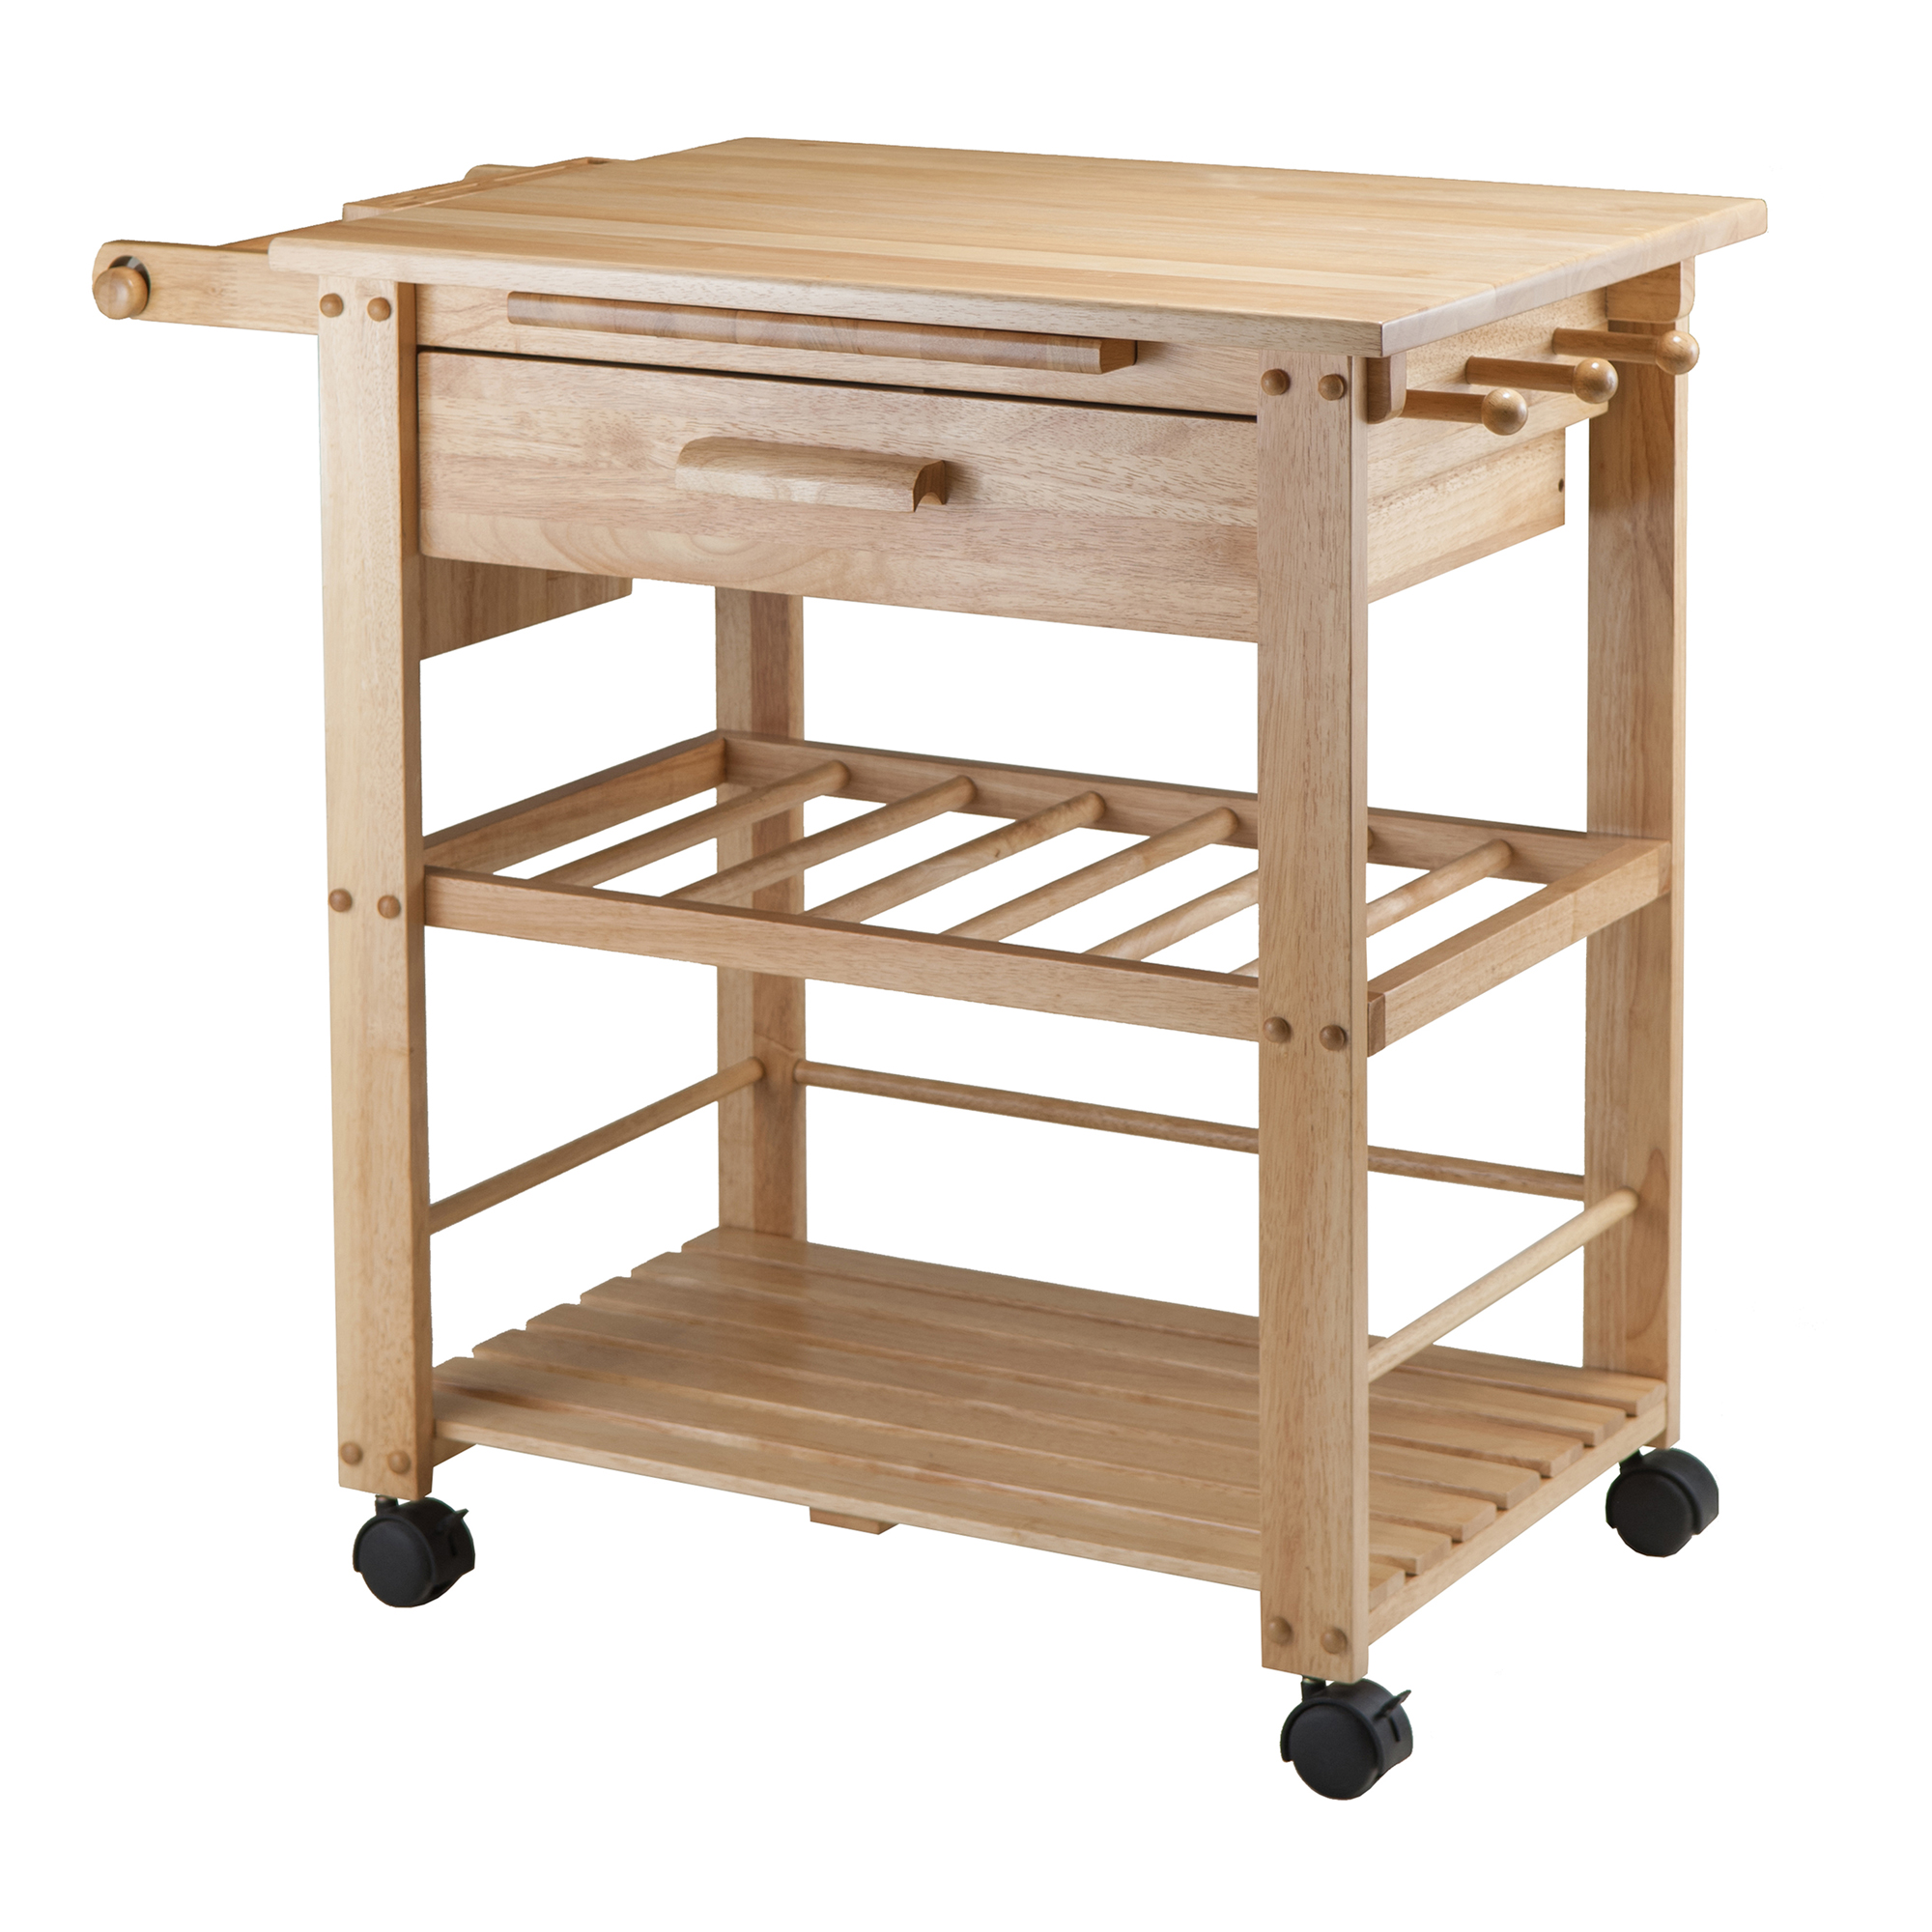 Image of: Winsome Wood Finland Kitchen Cart 35 In X 31 5 In Wood Natural Lowe S Canada